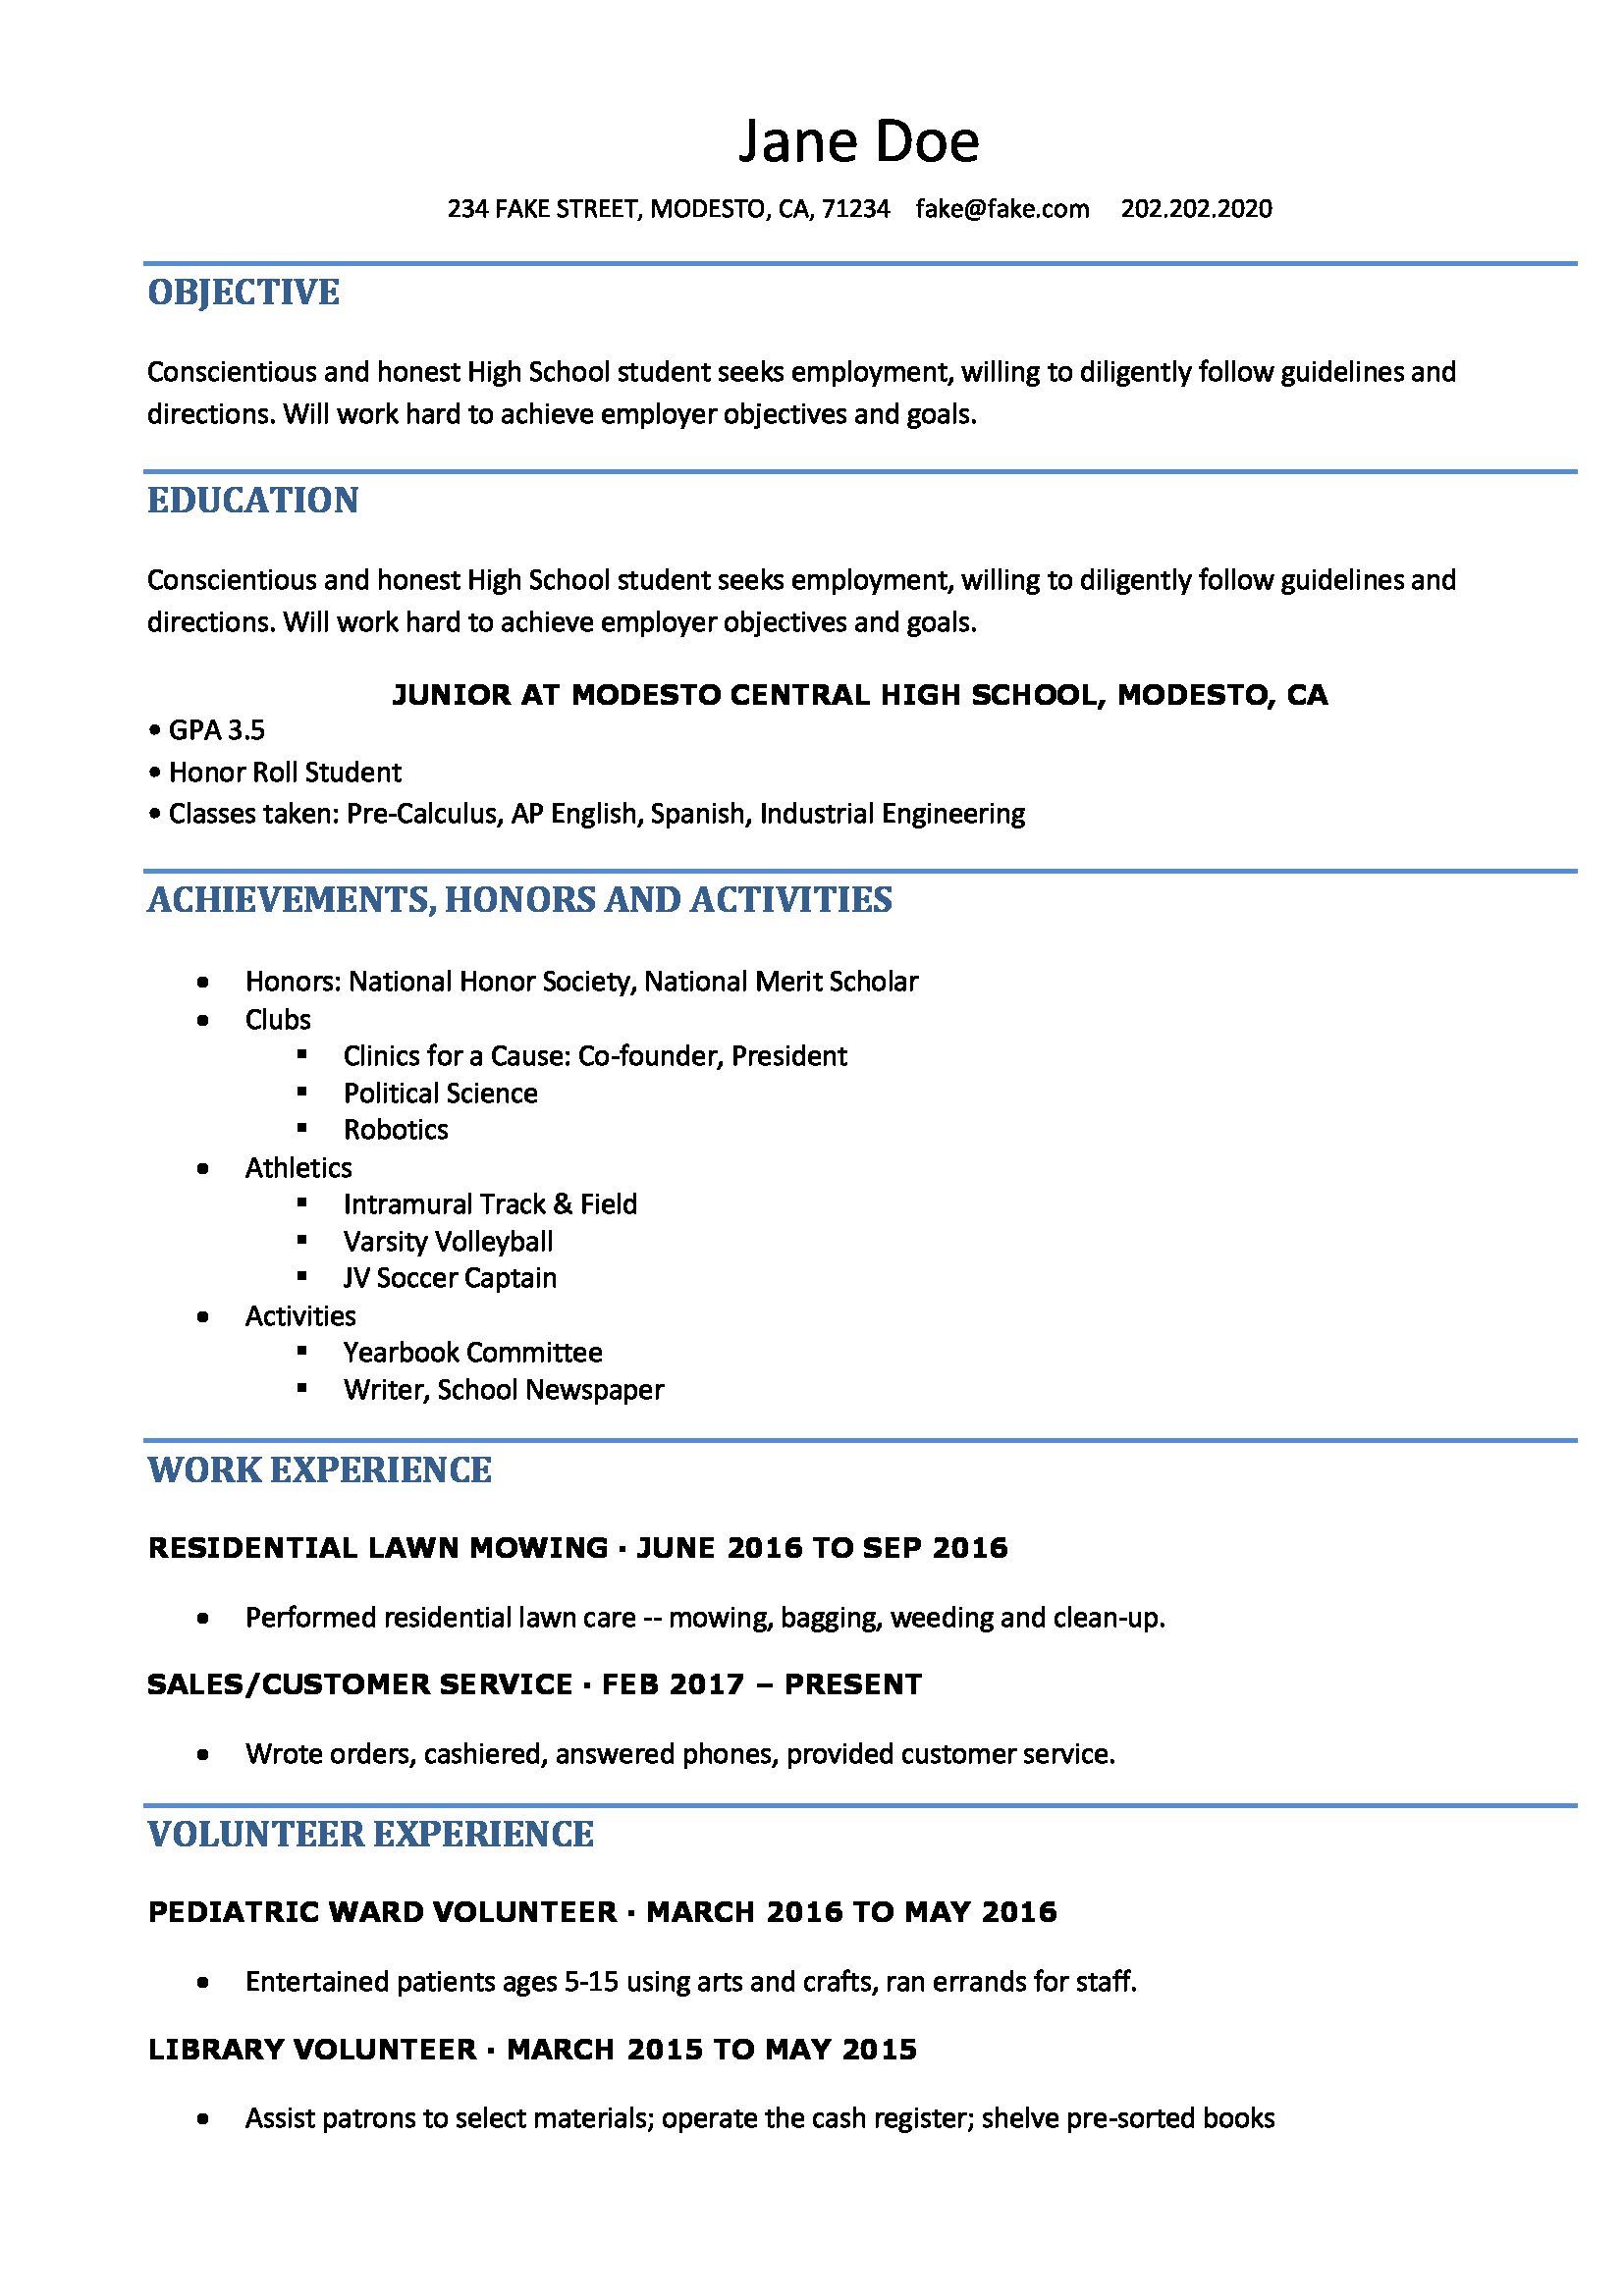 Pin by Rizky on Resumes Templates Word Free in 2020 High